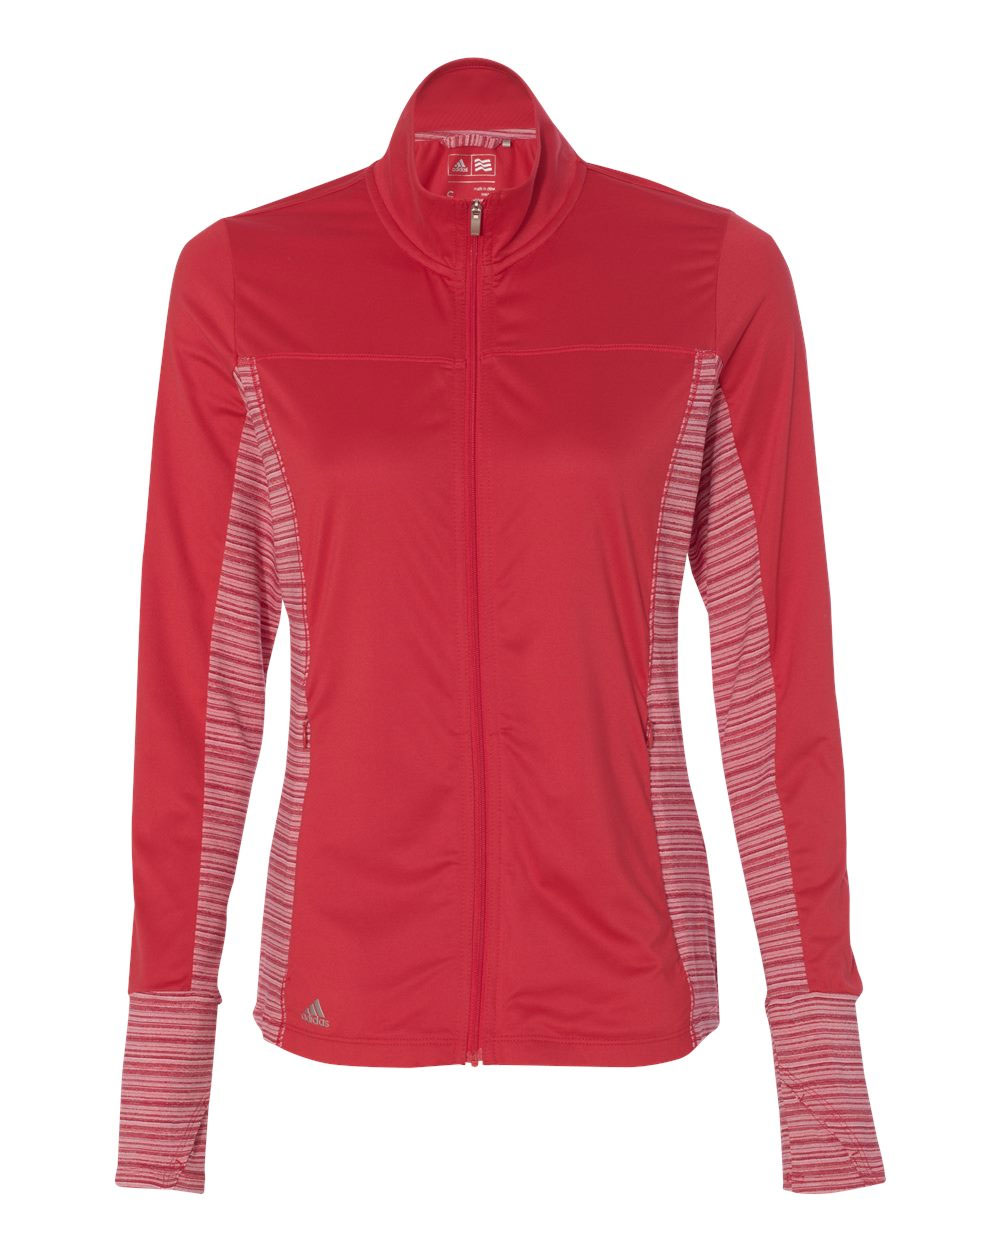 Adidas Golf Womens Rangewear Full Zip Jacket